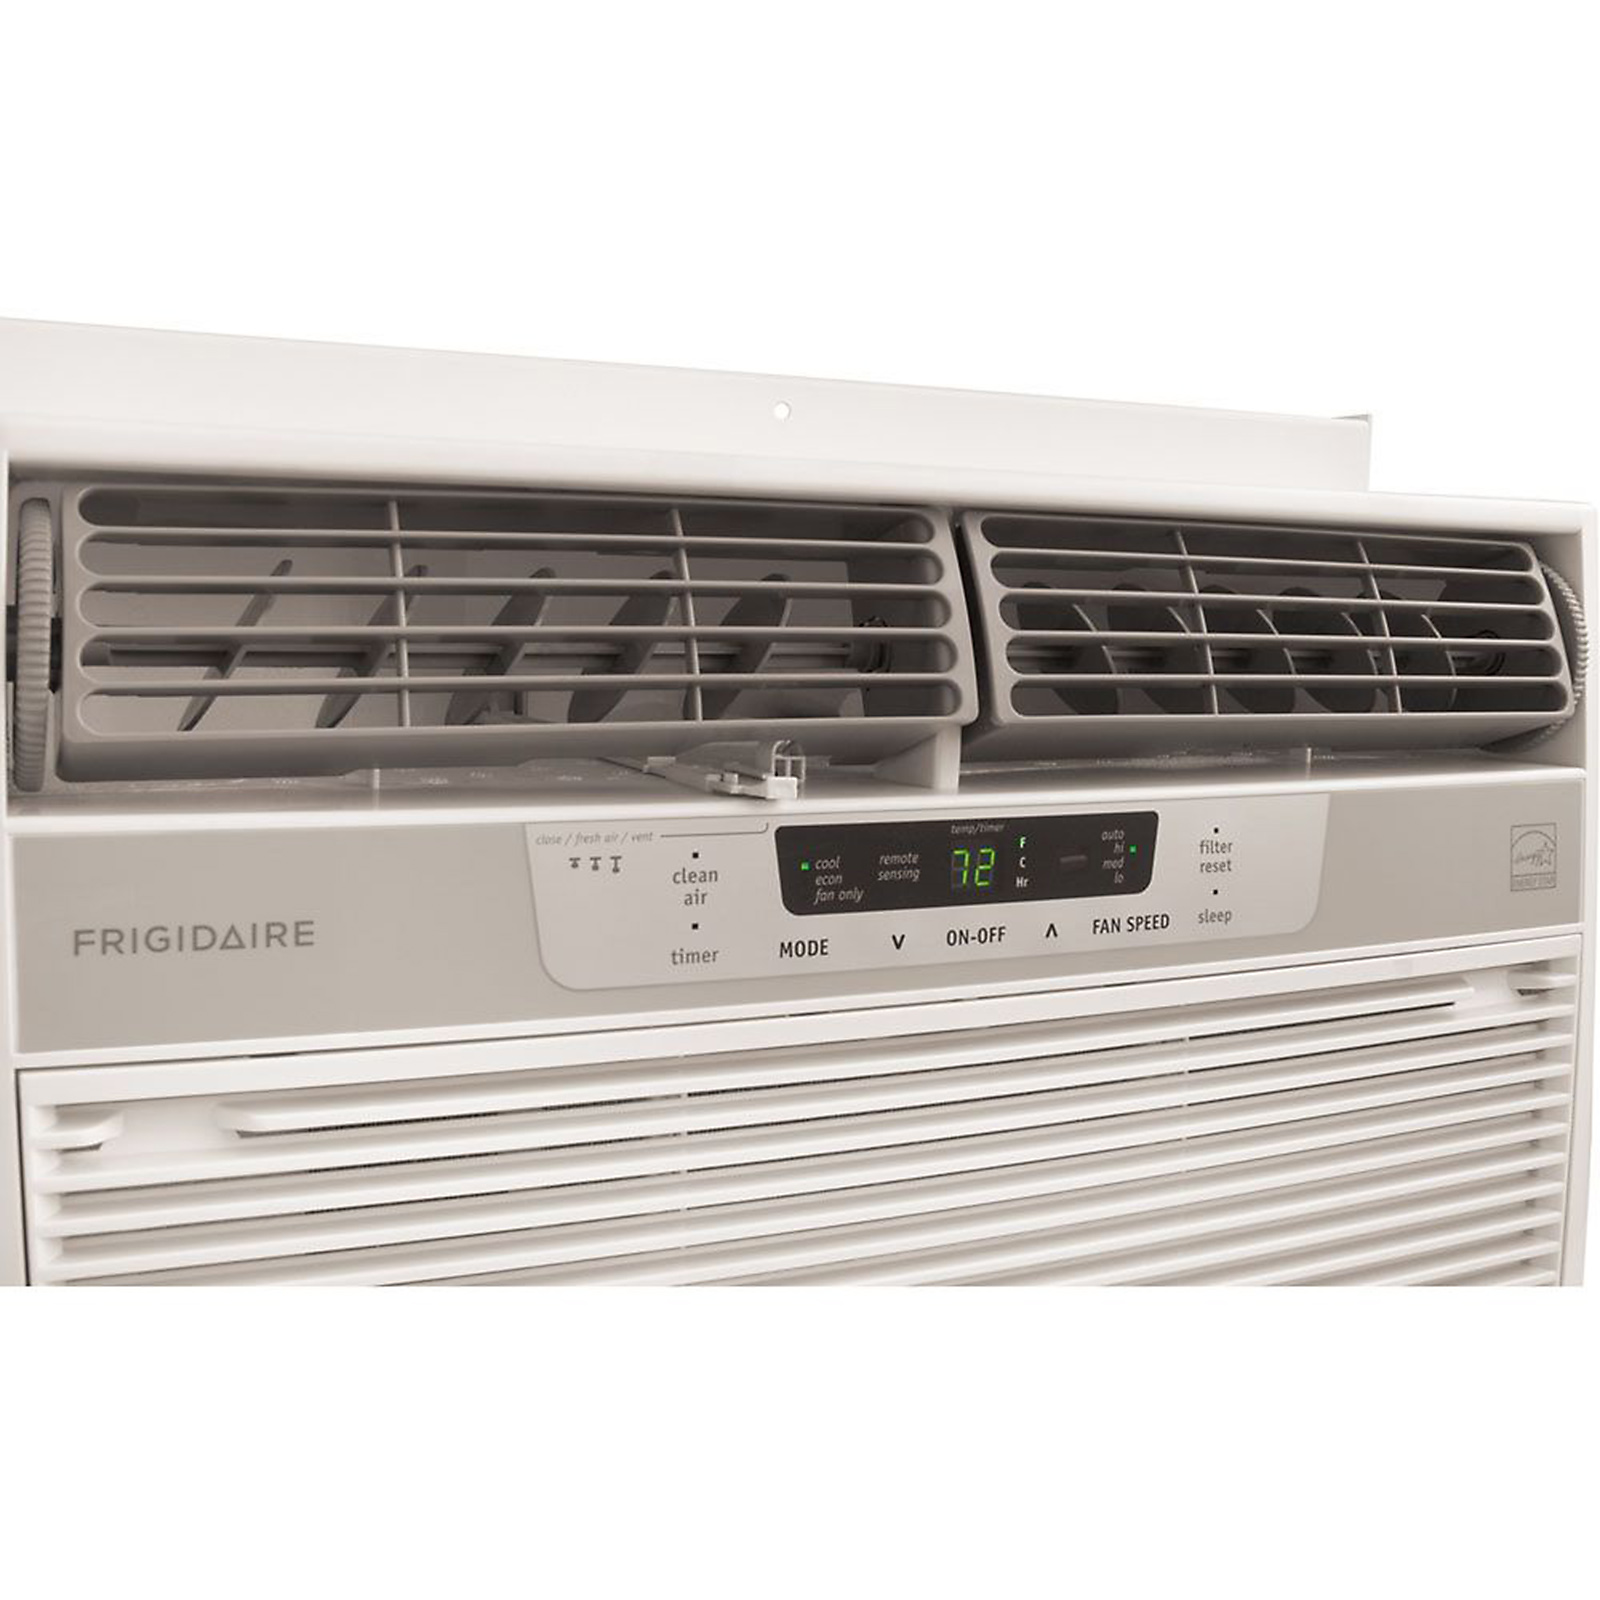 Frigidaire 10,000 BTU 115-Volt Window-Mounted Compact Air Conditioner with Temperature Sensing Remote Control